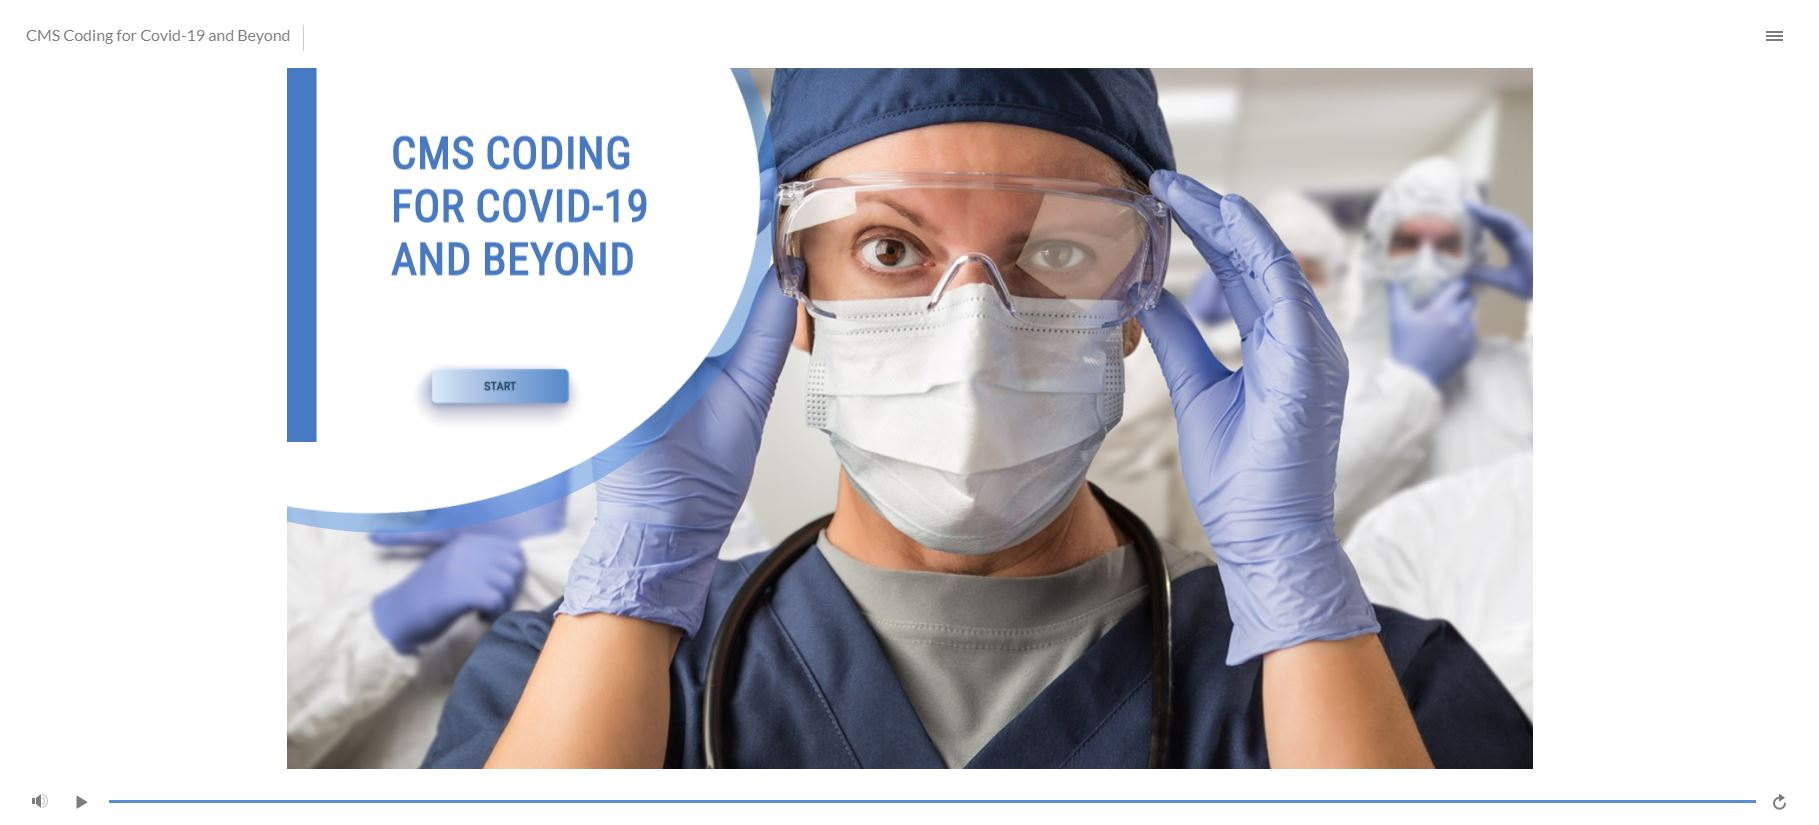 CMS Coding for COVID-19 and Beyond